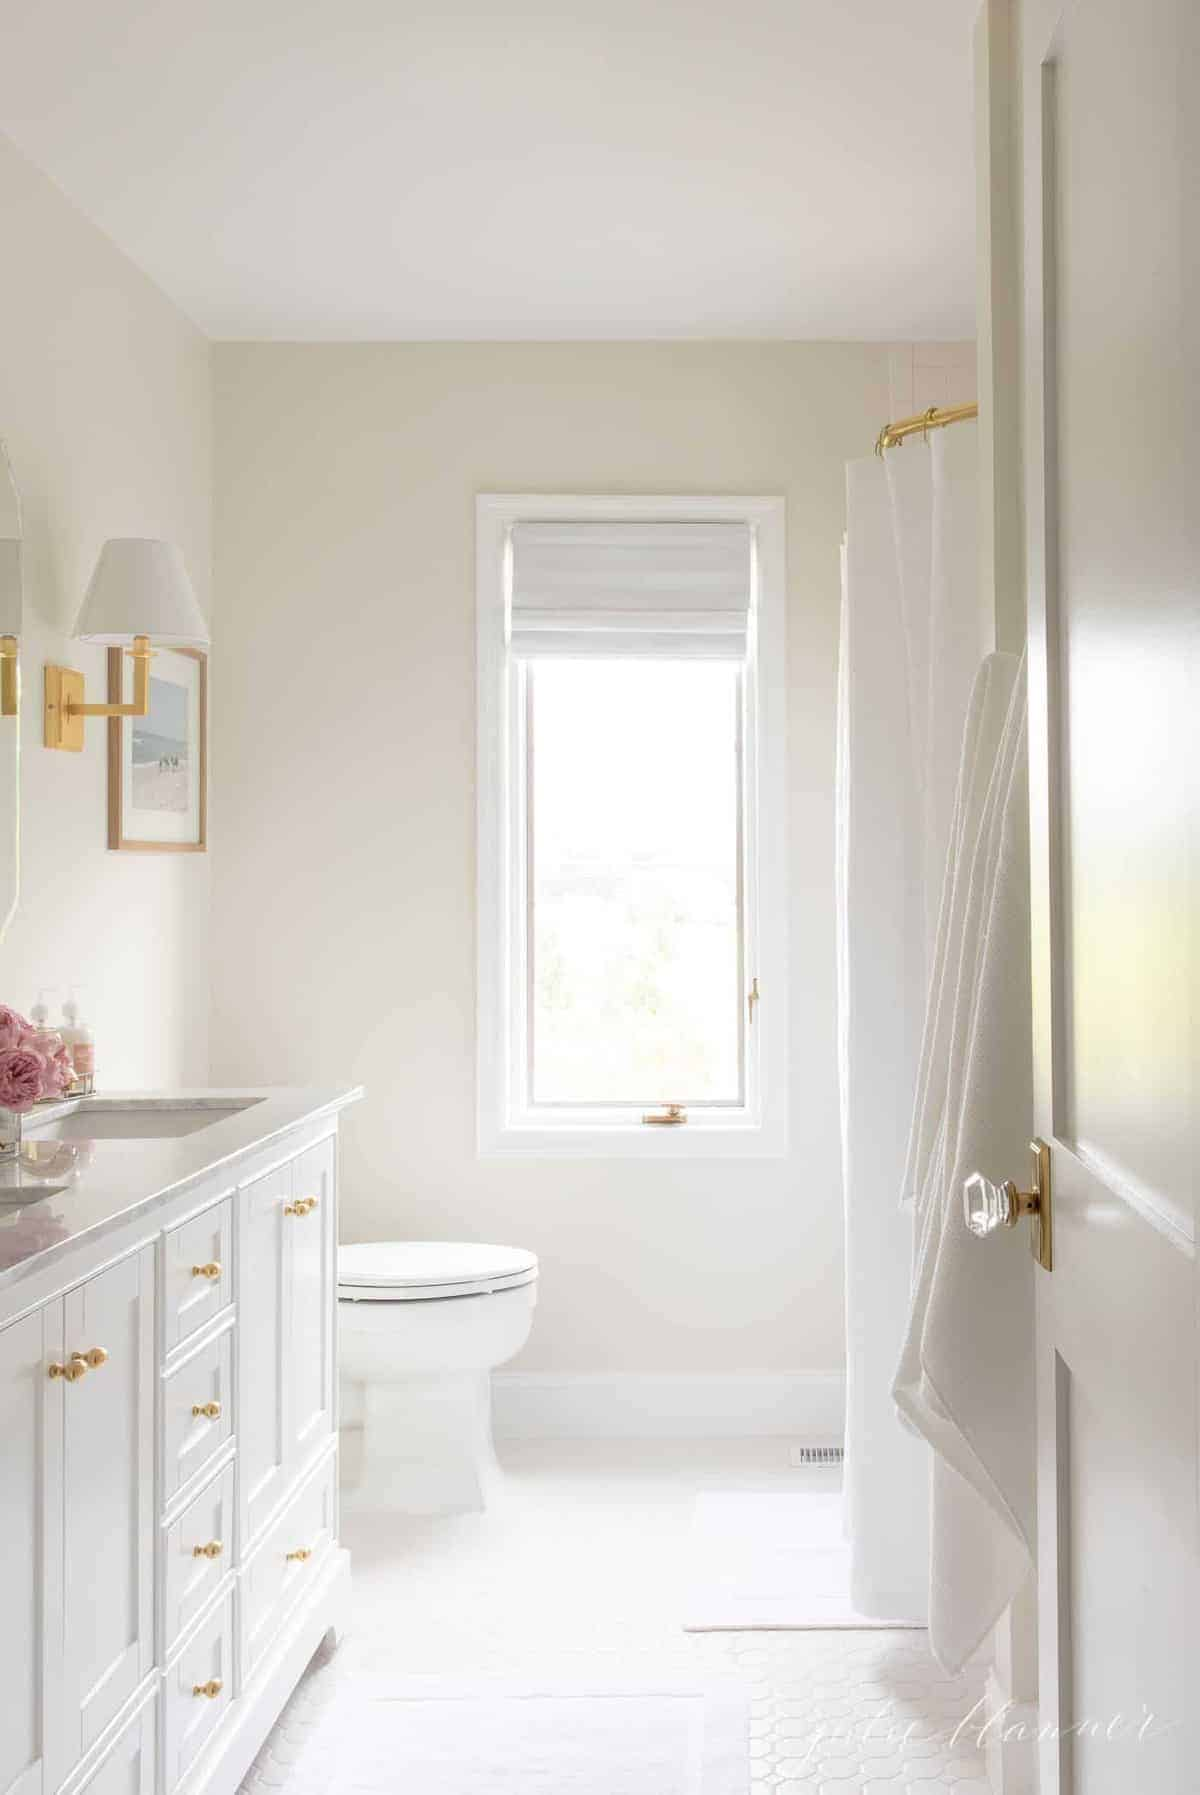 A white spa inspired home bathroom with gold hardware for a luxury home decor look.